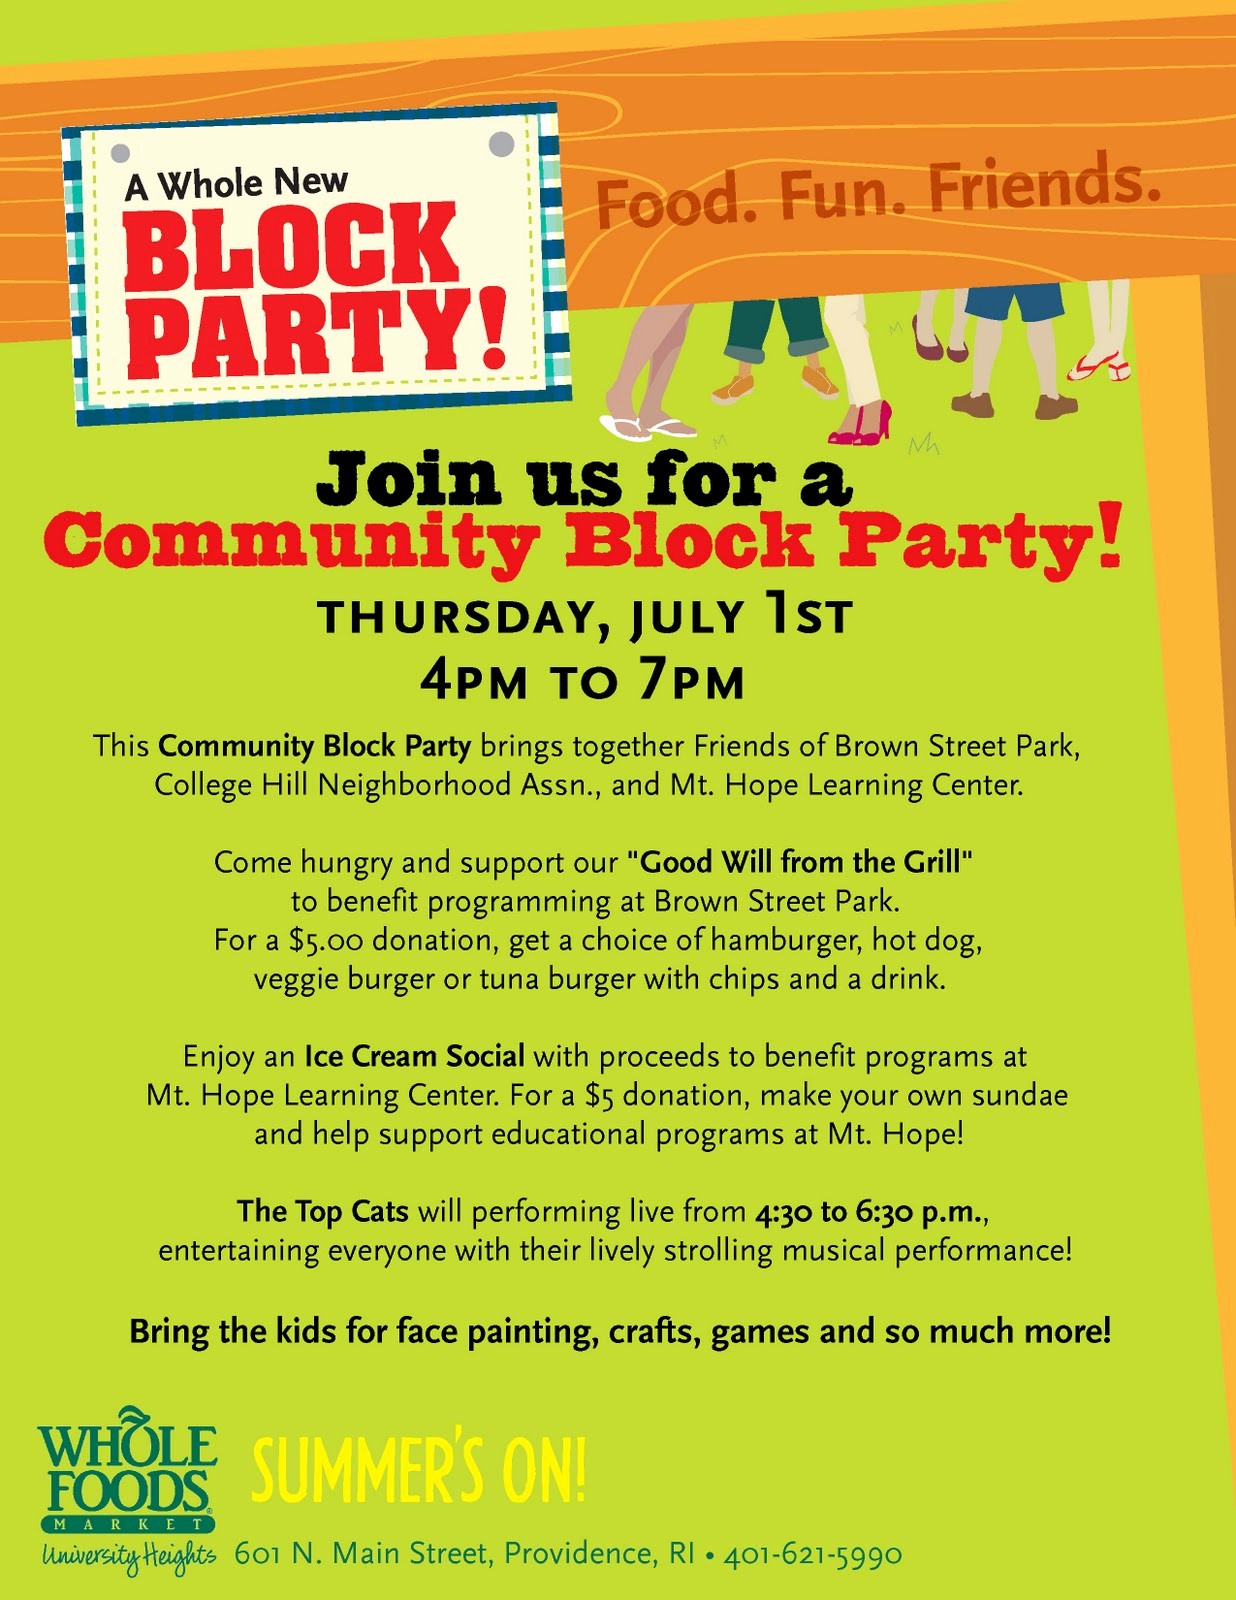 Block Party Flyer Templates Free Elegant Friends Of Brown Street Park June 2010